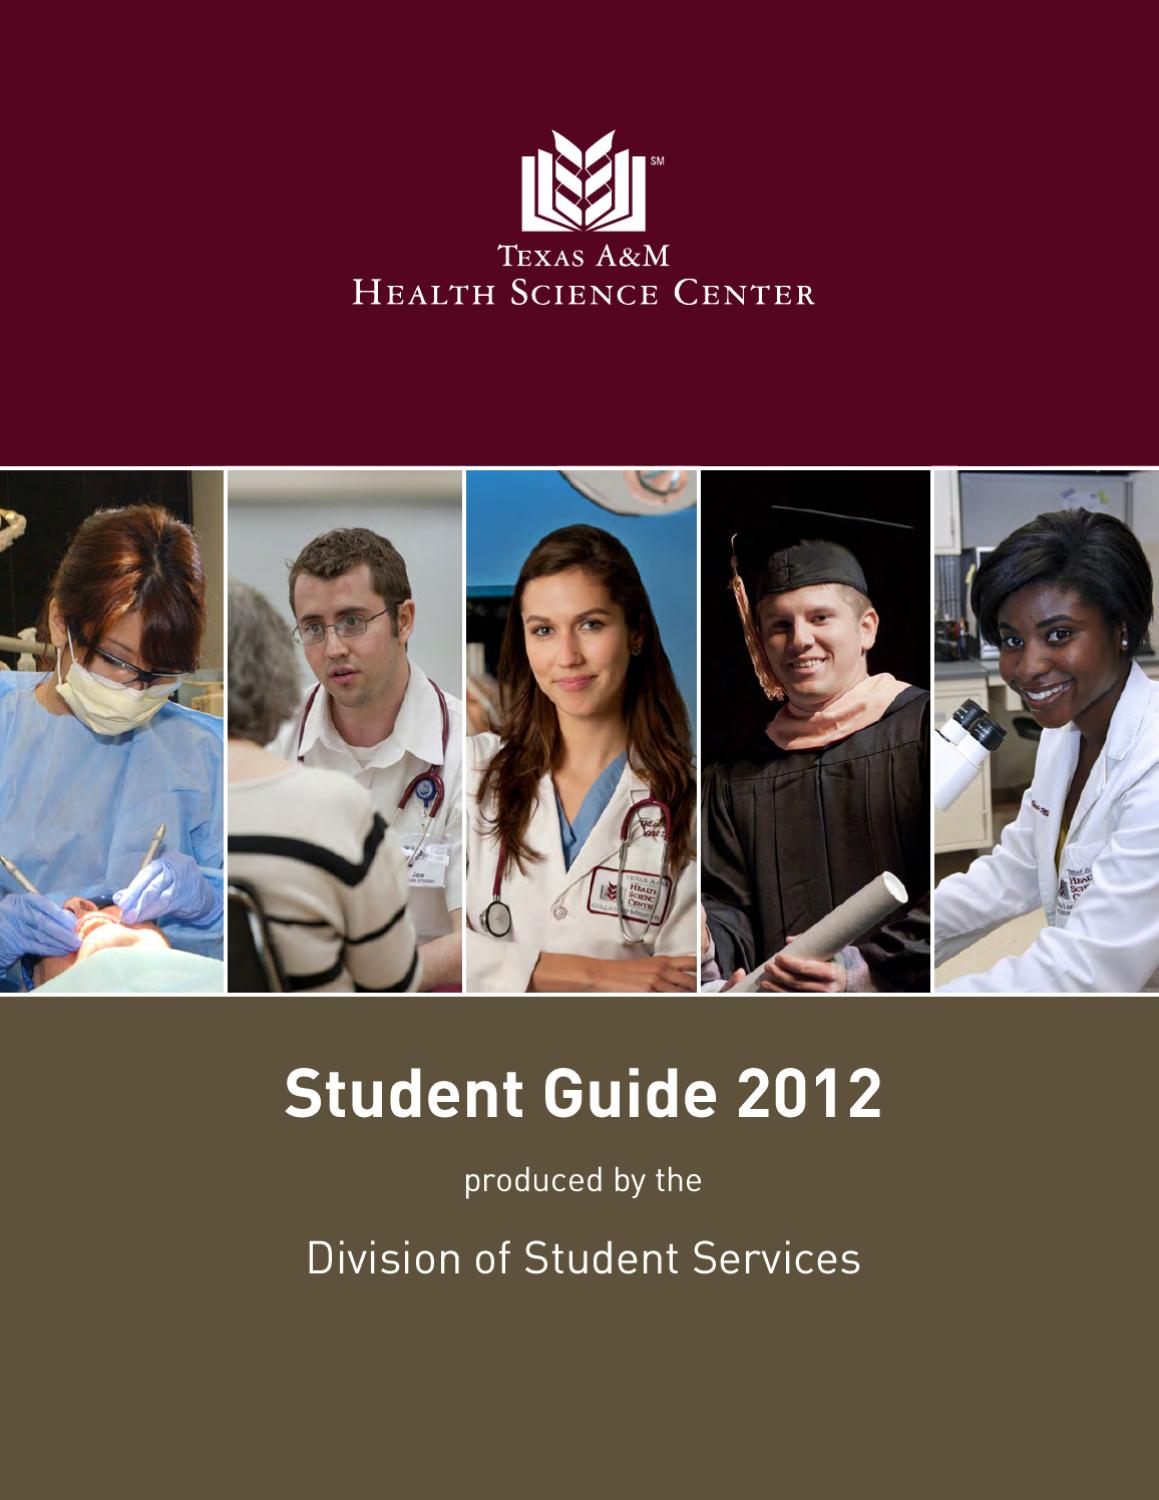 Texas A&M Health Science Center Student Guide by Texas A&M